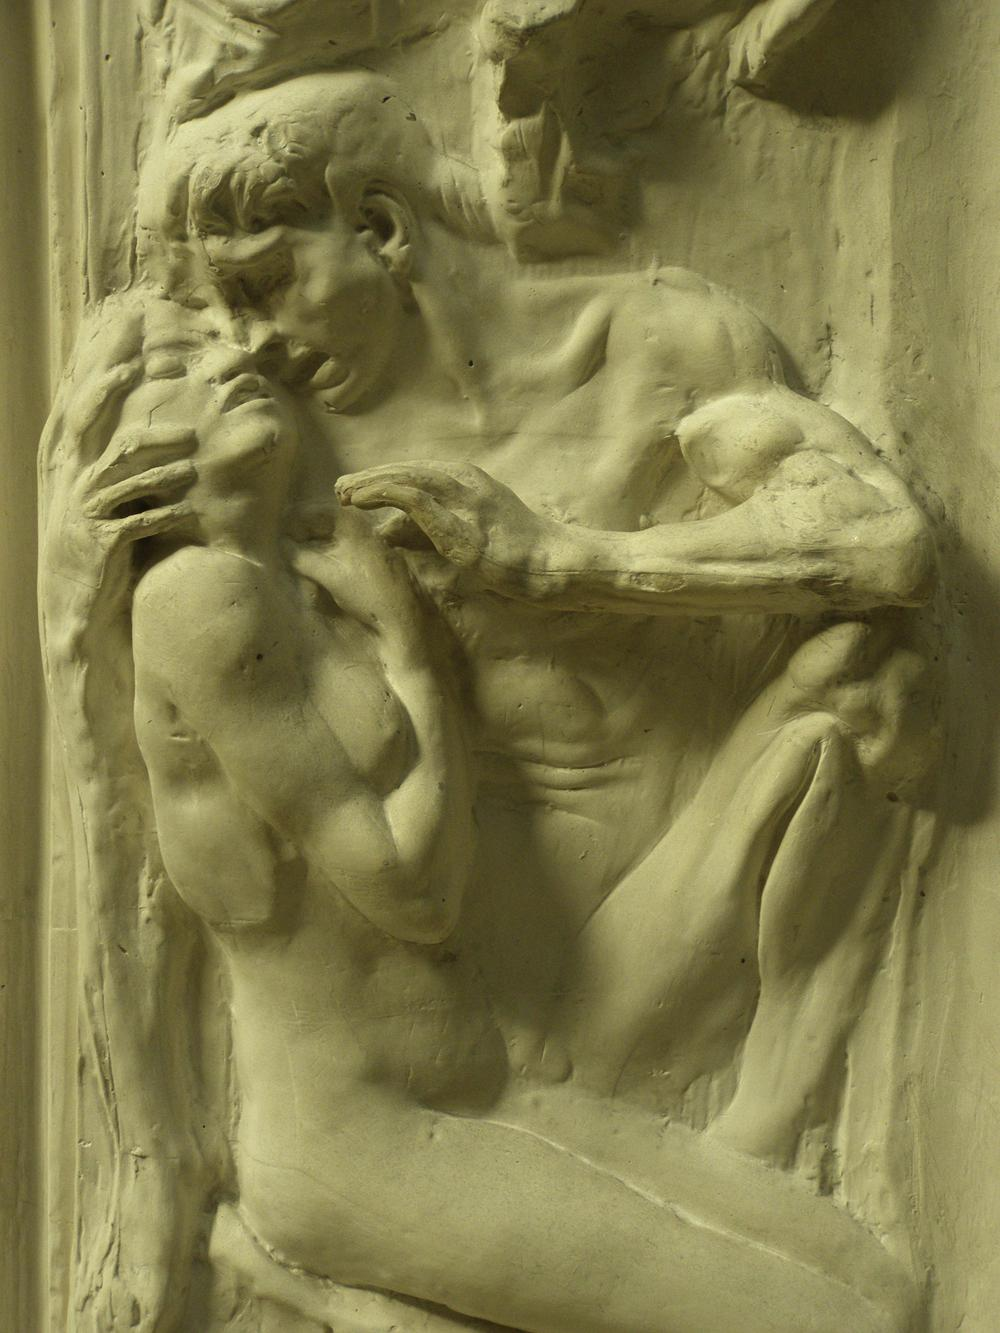 August Rodin: Details from